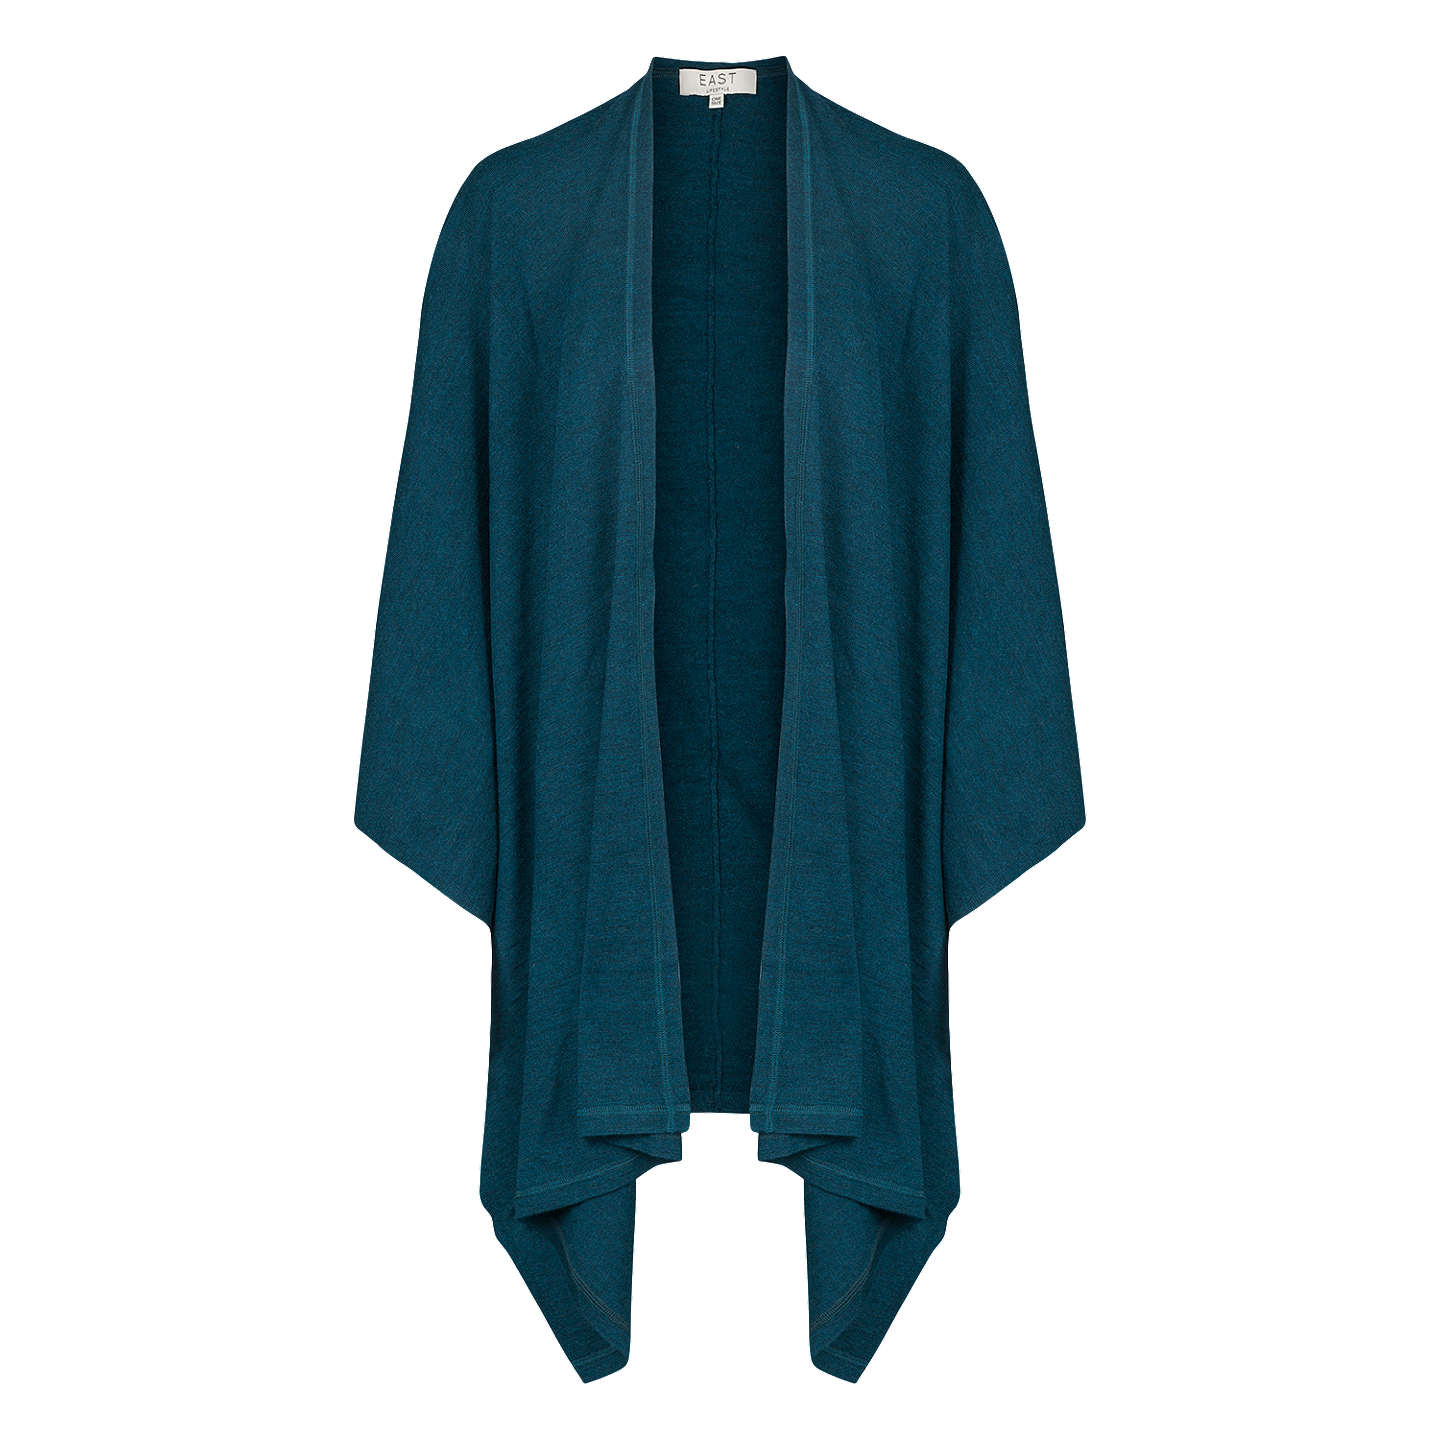 BuyEast Merino Wool Knitted Wrap, Teal Online at johnlewis.com